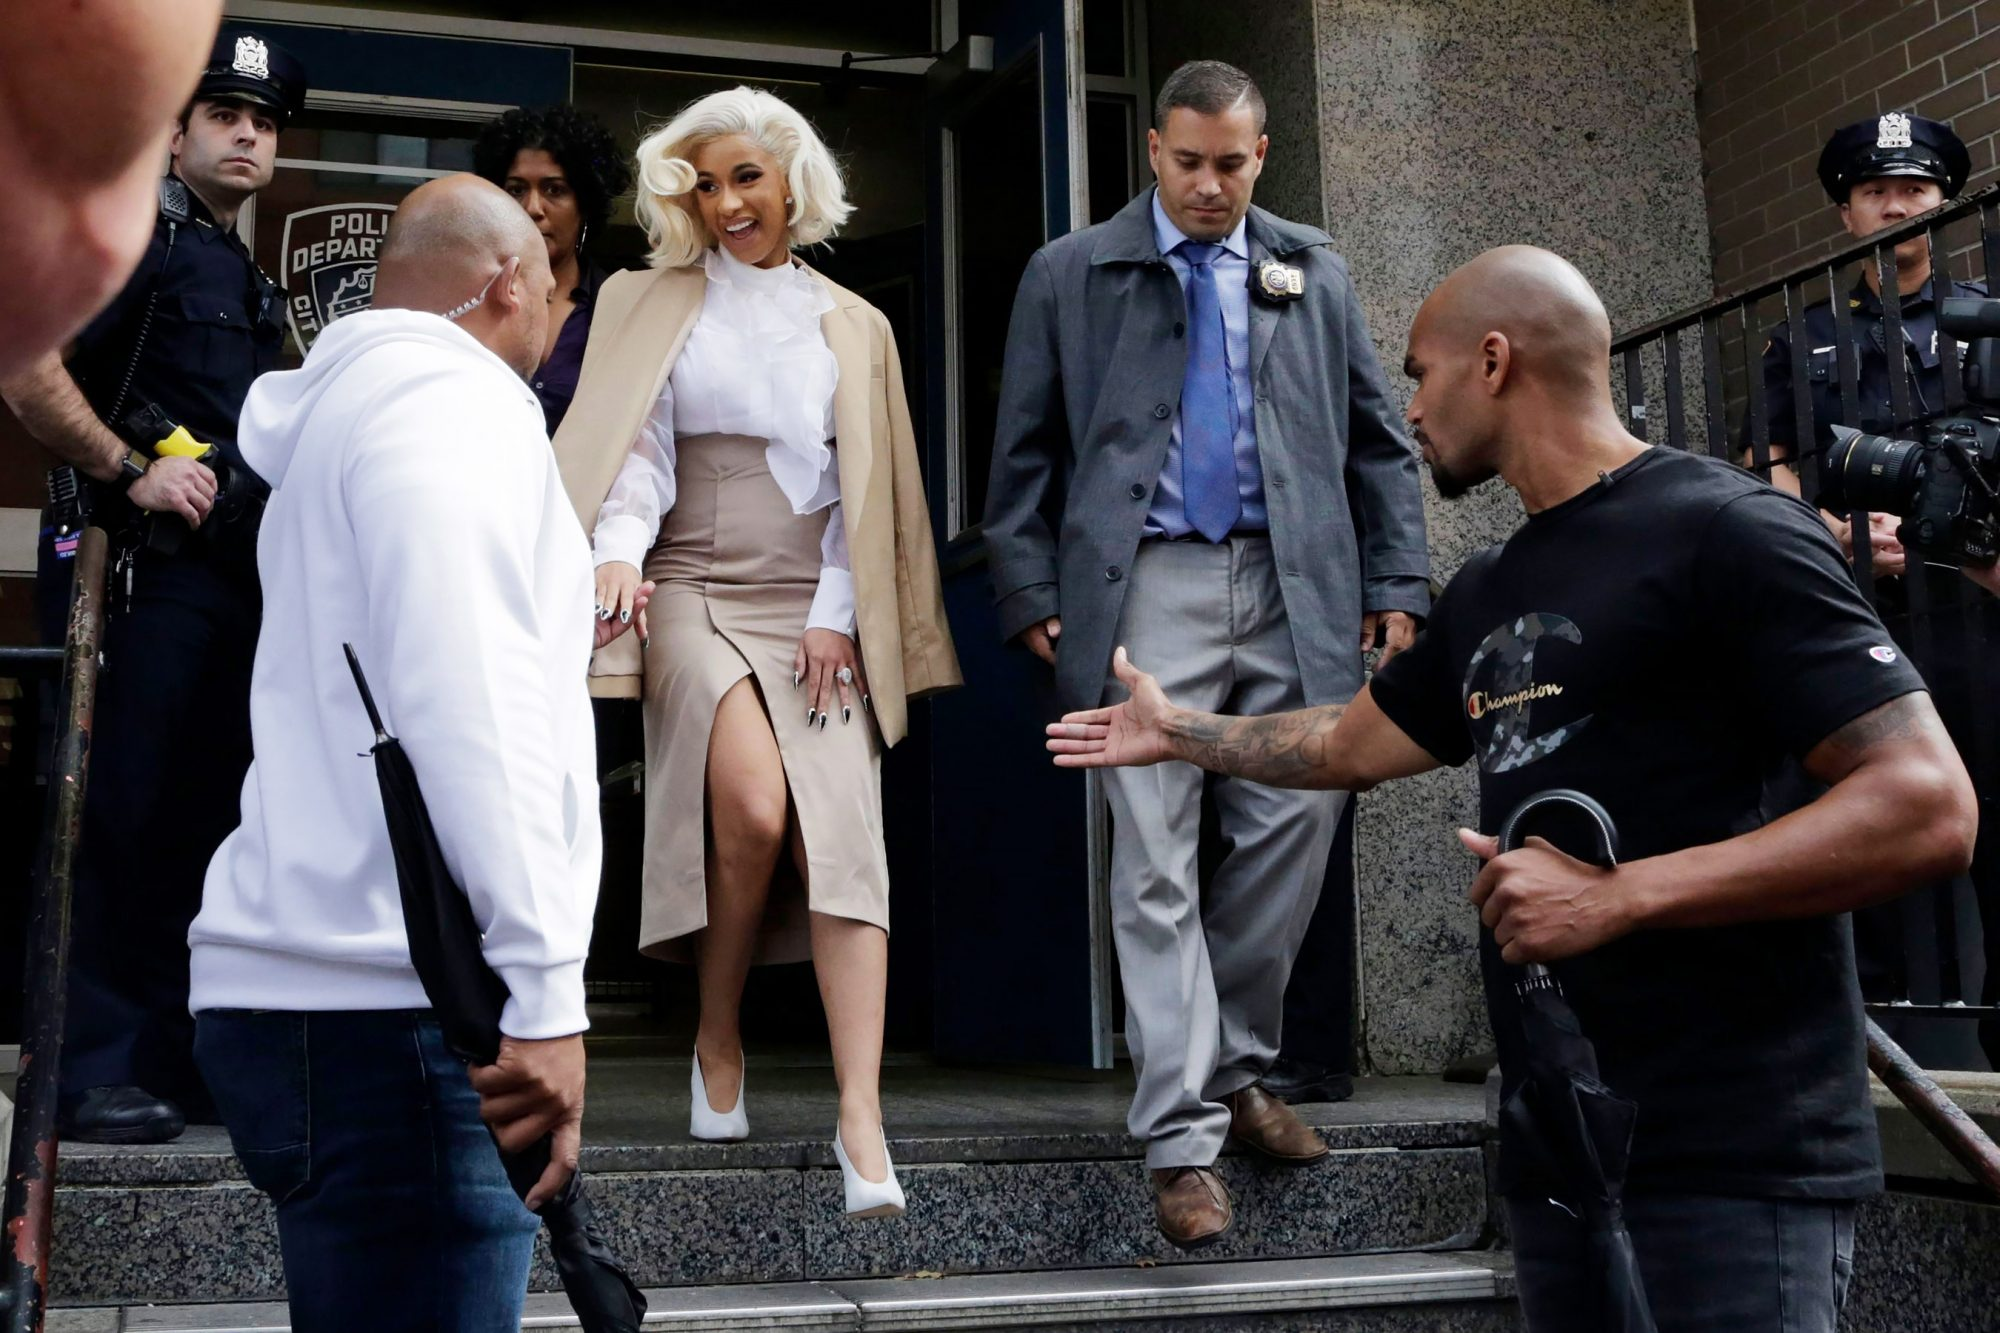 Cardi B Strip Club Fracas, New York, USA - 01 Oct 2018